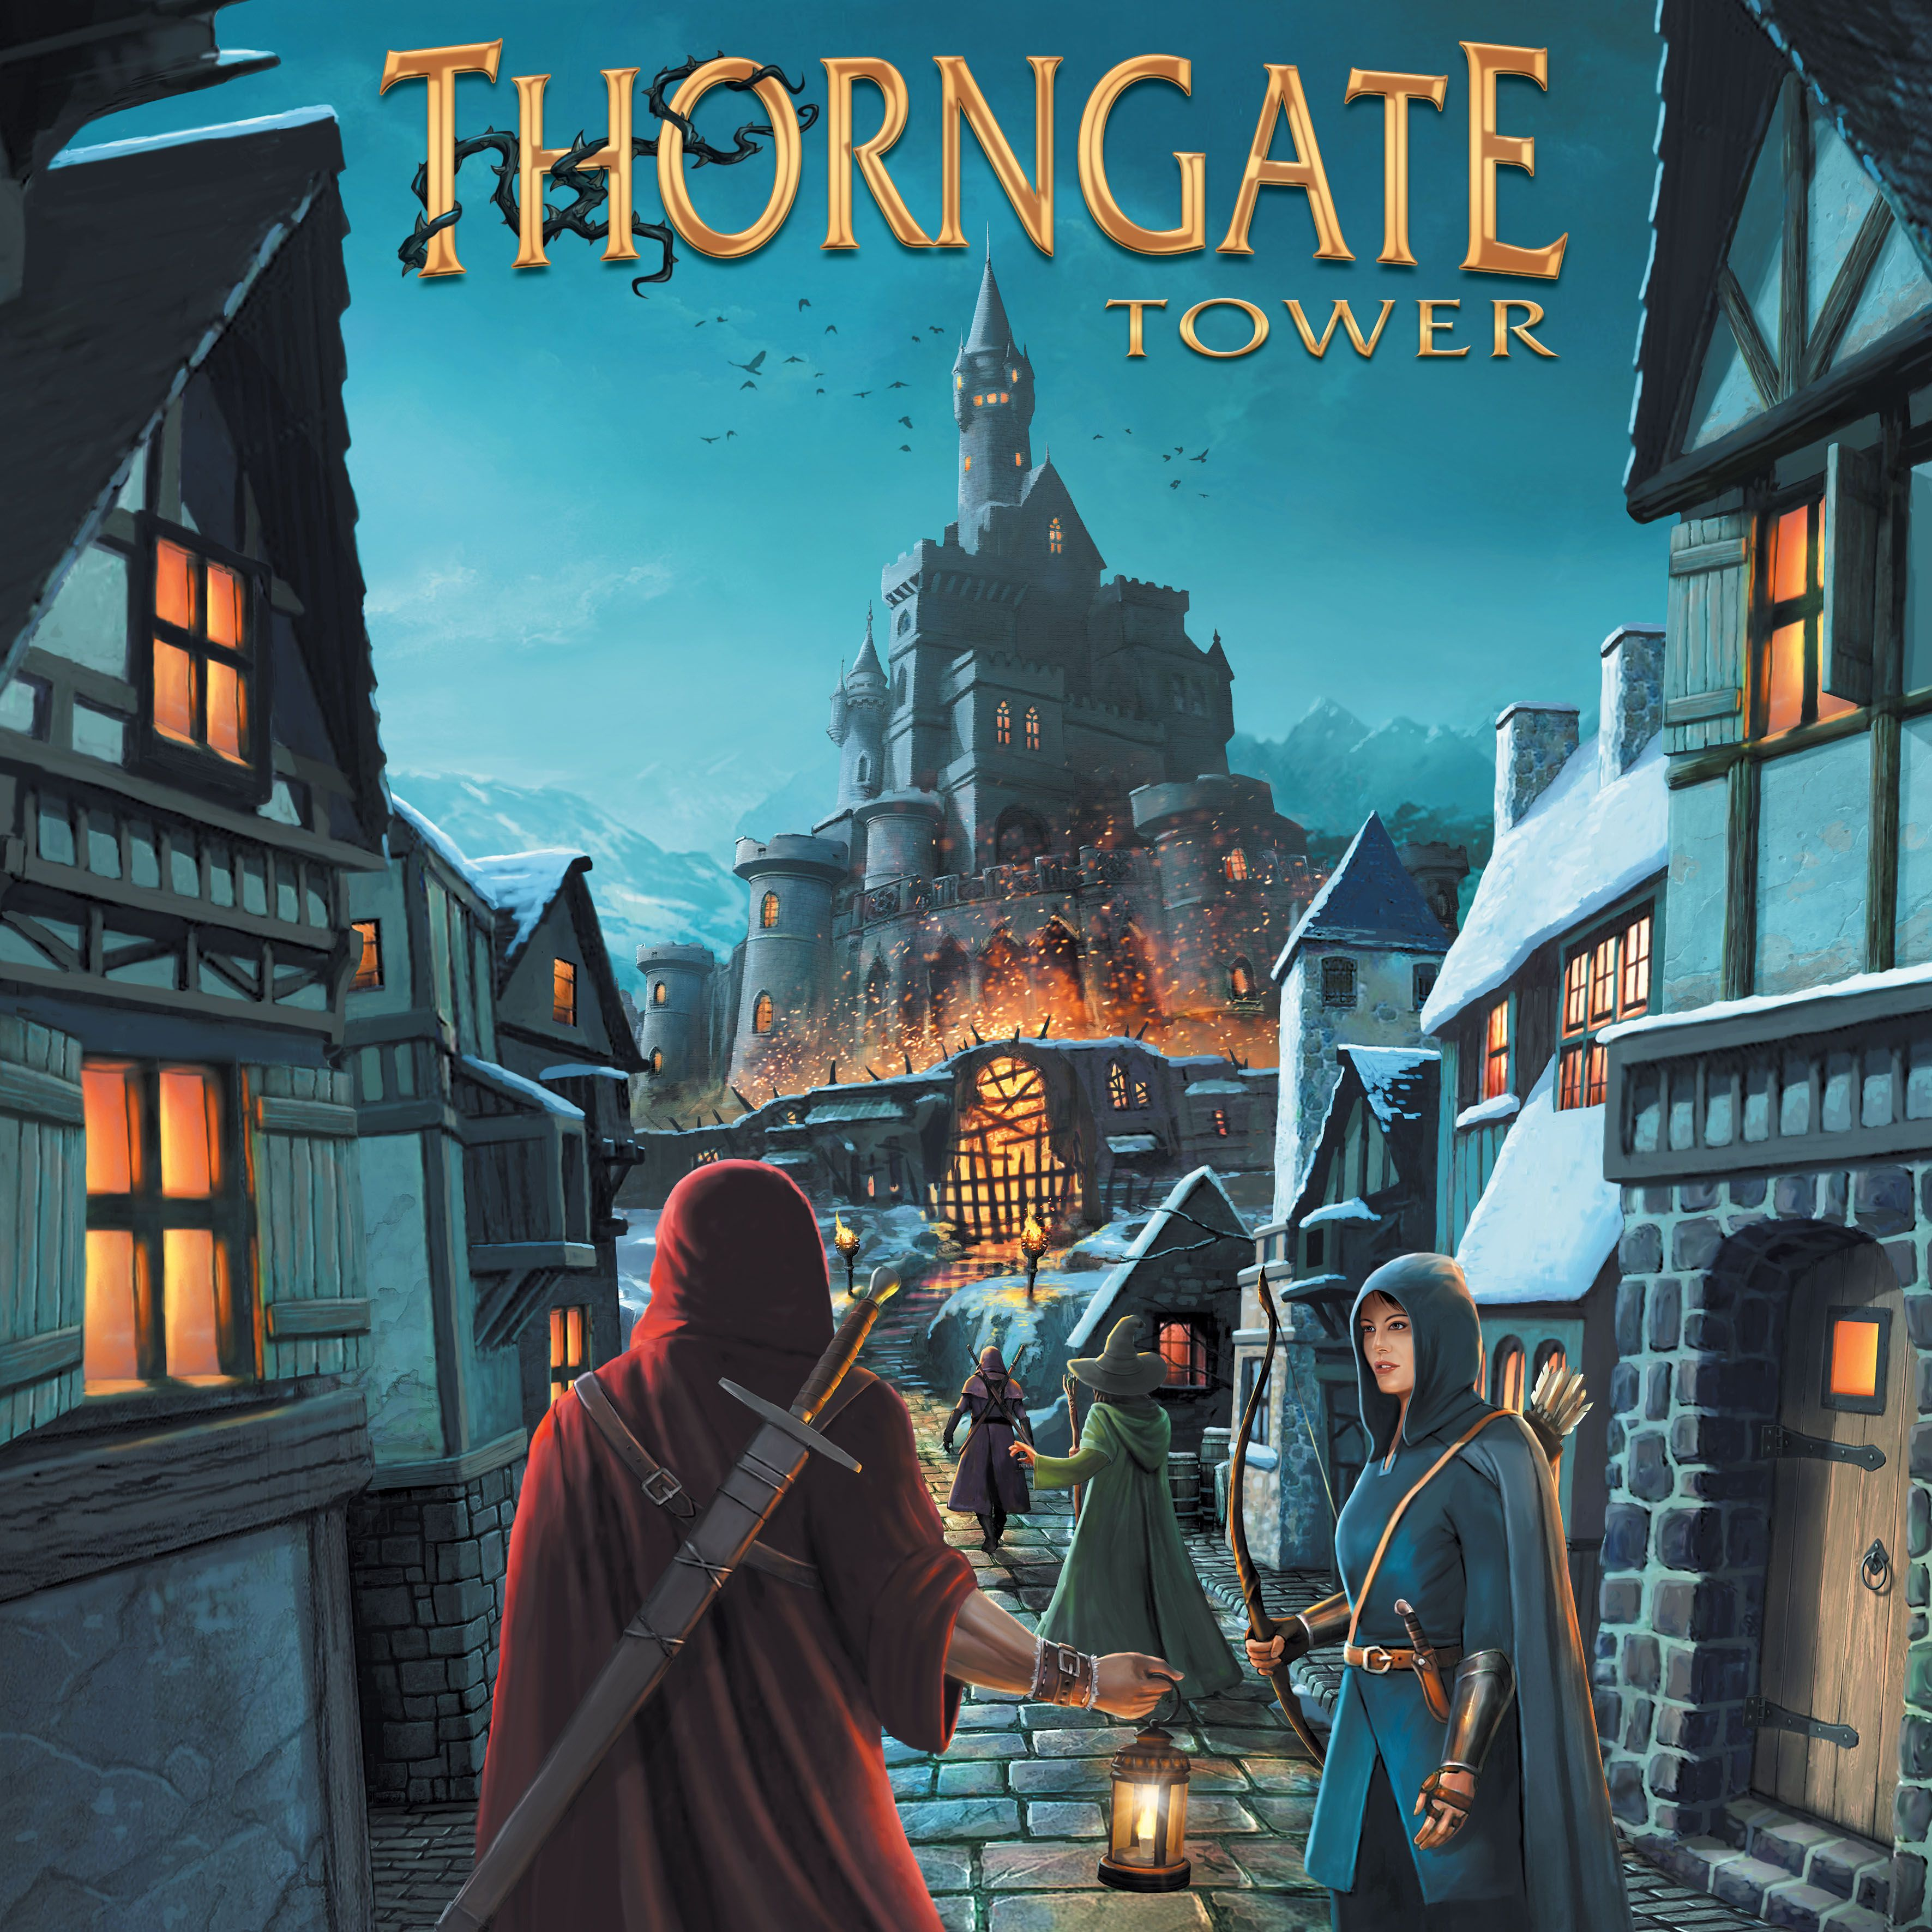 Thorngate Tower